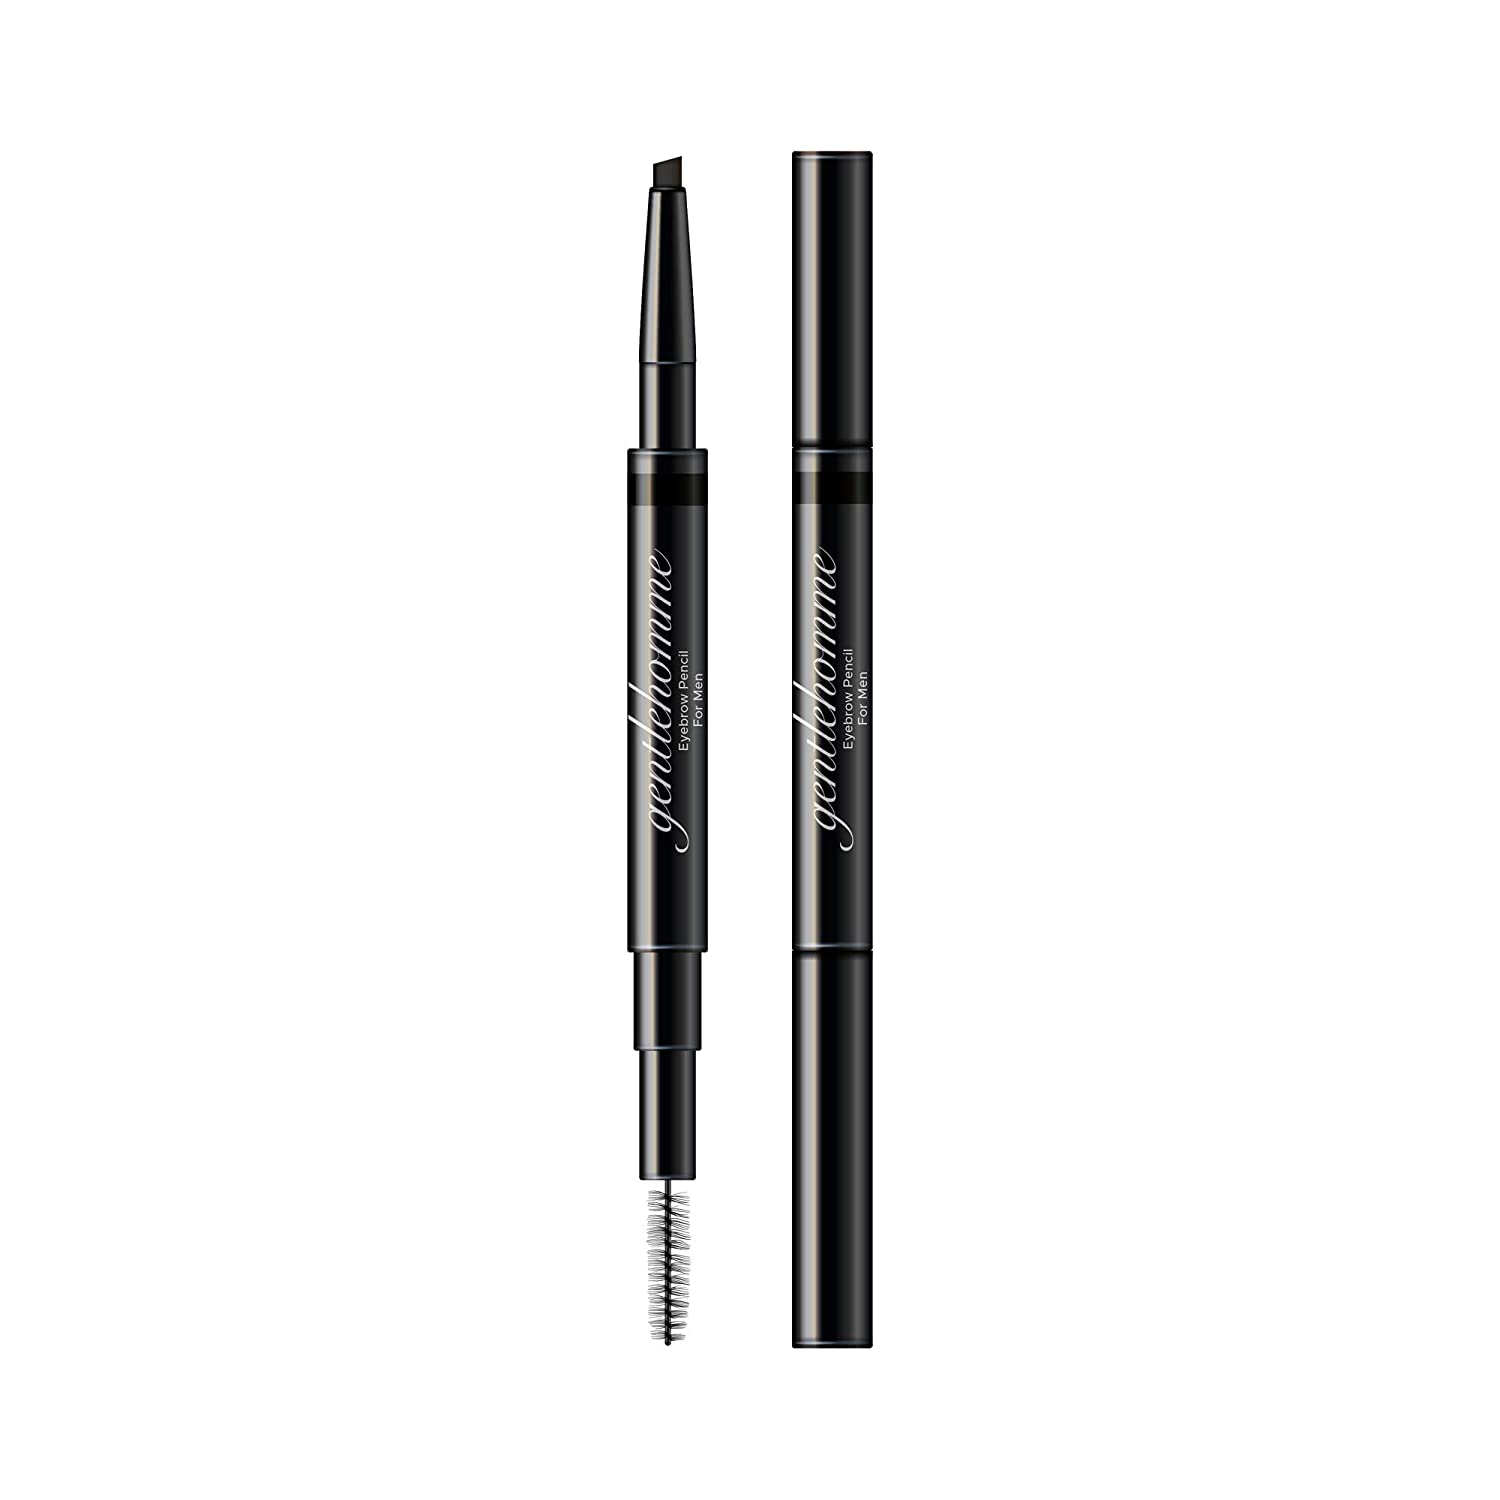 Gentlehomme Mens Eyebrow Pencil Black, Easily Shape Define Fill Eyebrows or Facial Hair, 2 in 1 brush and ultra-thin pencil, Waterproof Smudge Proof Sweatproof, Durable and Long Lasting